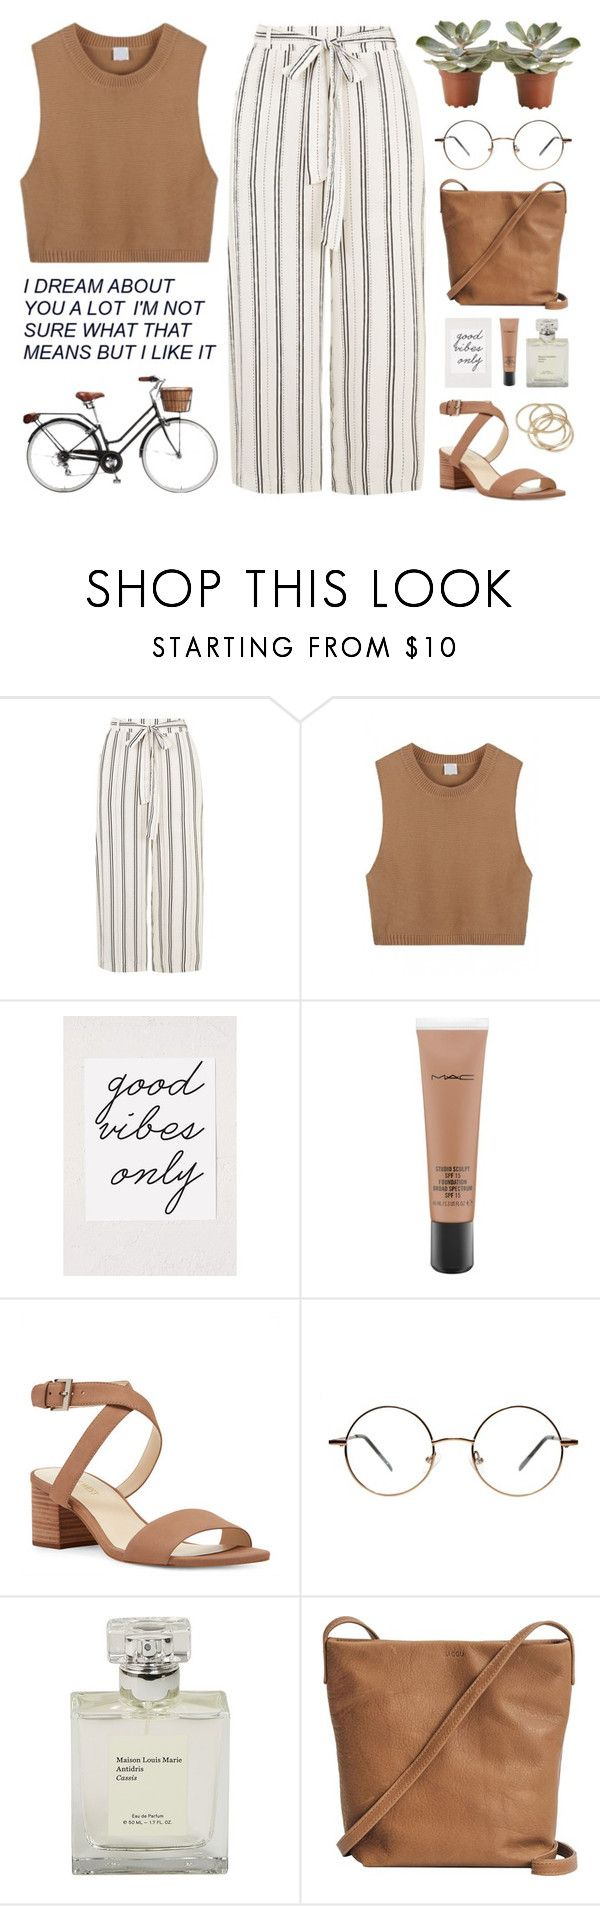 """""""One in a million"""" by tania-maria ❤ liked on Polyvore featuring Retrò, Urban Outfitters, MAC Cosmetics, Nine West, BAGGU and ABS by Allen Schwartz"""